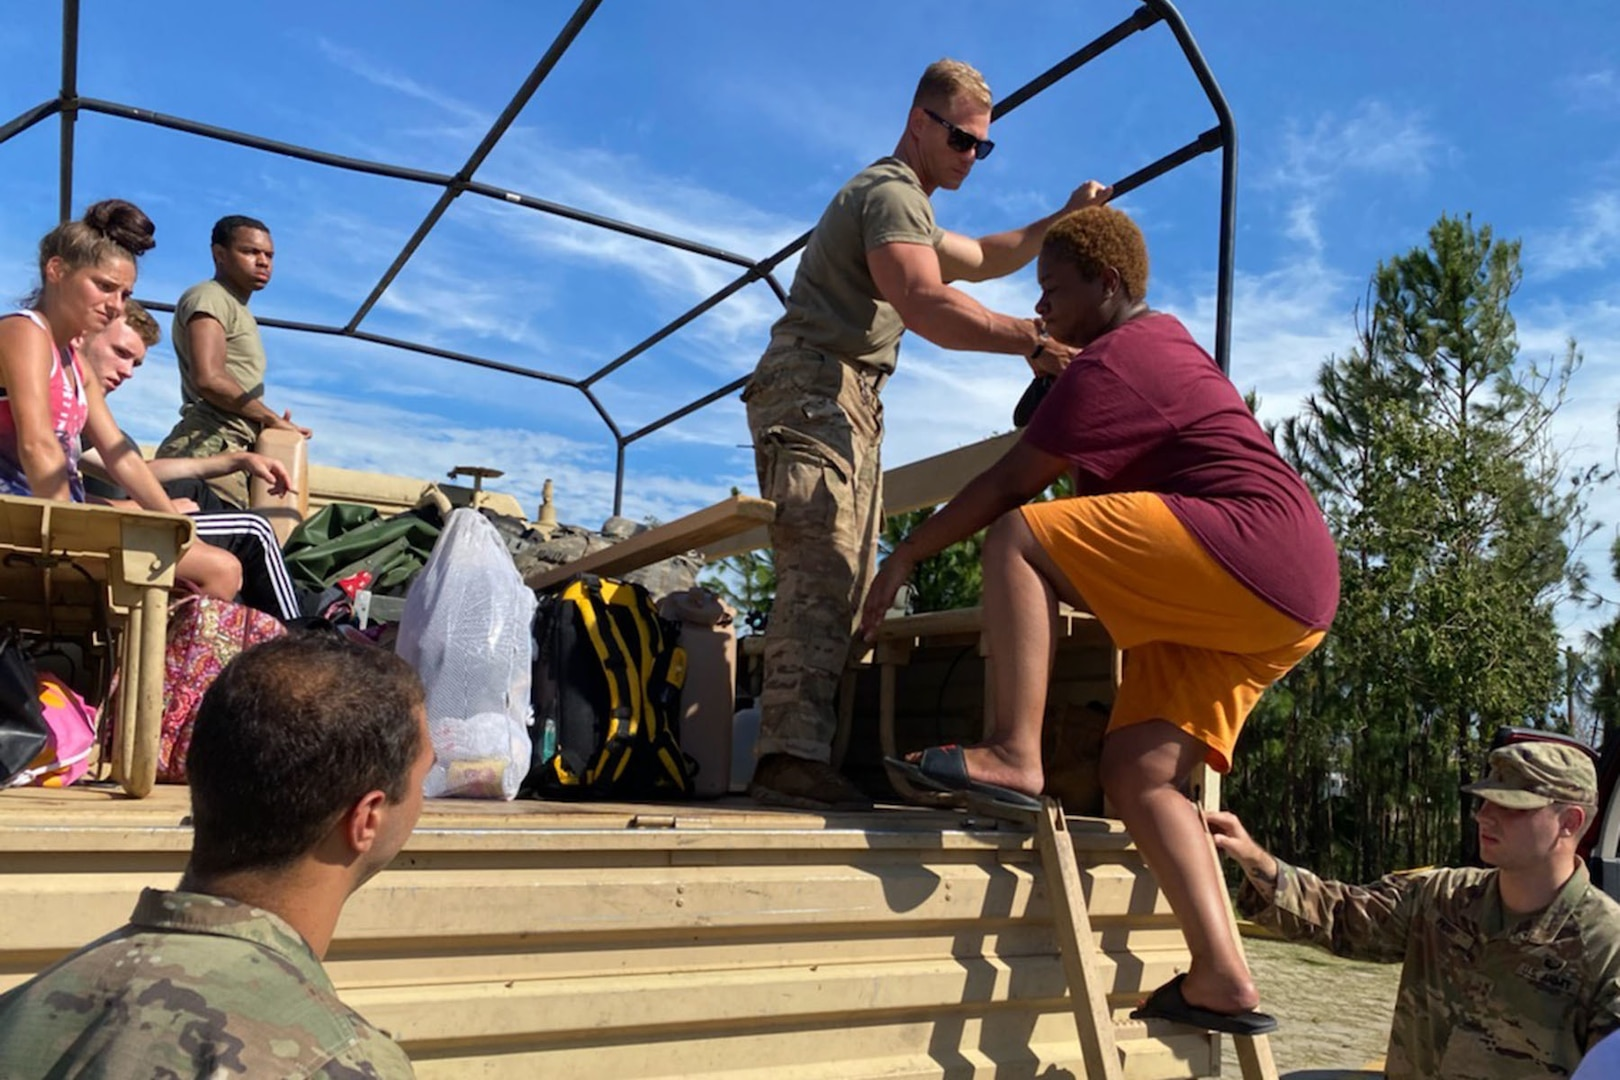 More than 6,200 members of the Louisiana National Guard are helping civilian authorities respond to the aftermath of Hurricane Laura, which made landfall in southwest Louisiana Aug. 27, 2020.